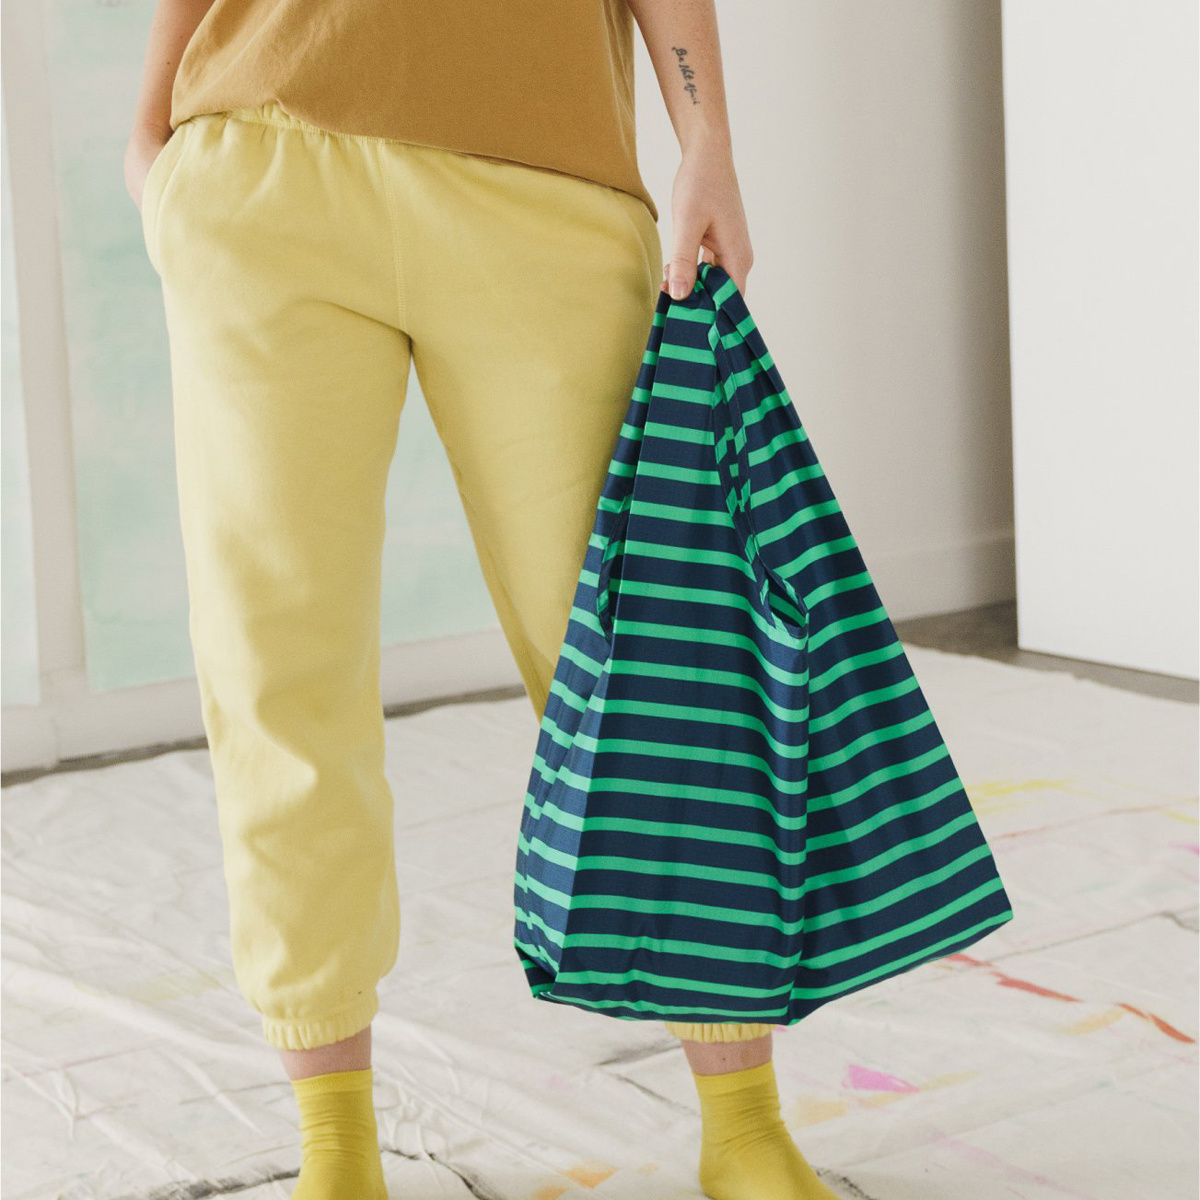 Baggu - BA Baggu Aloe Sailor Stripe Reusable Bag